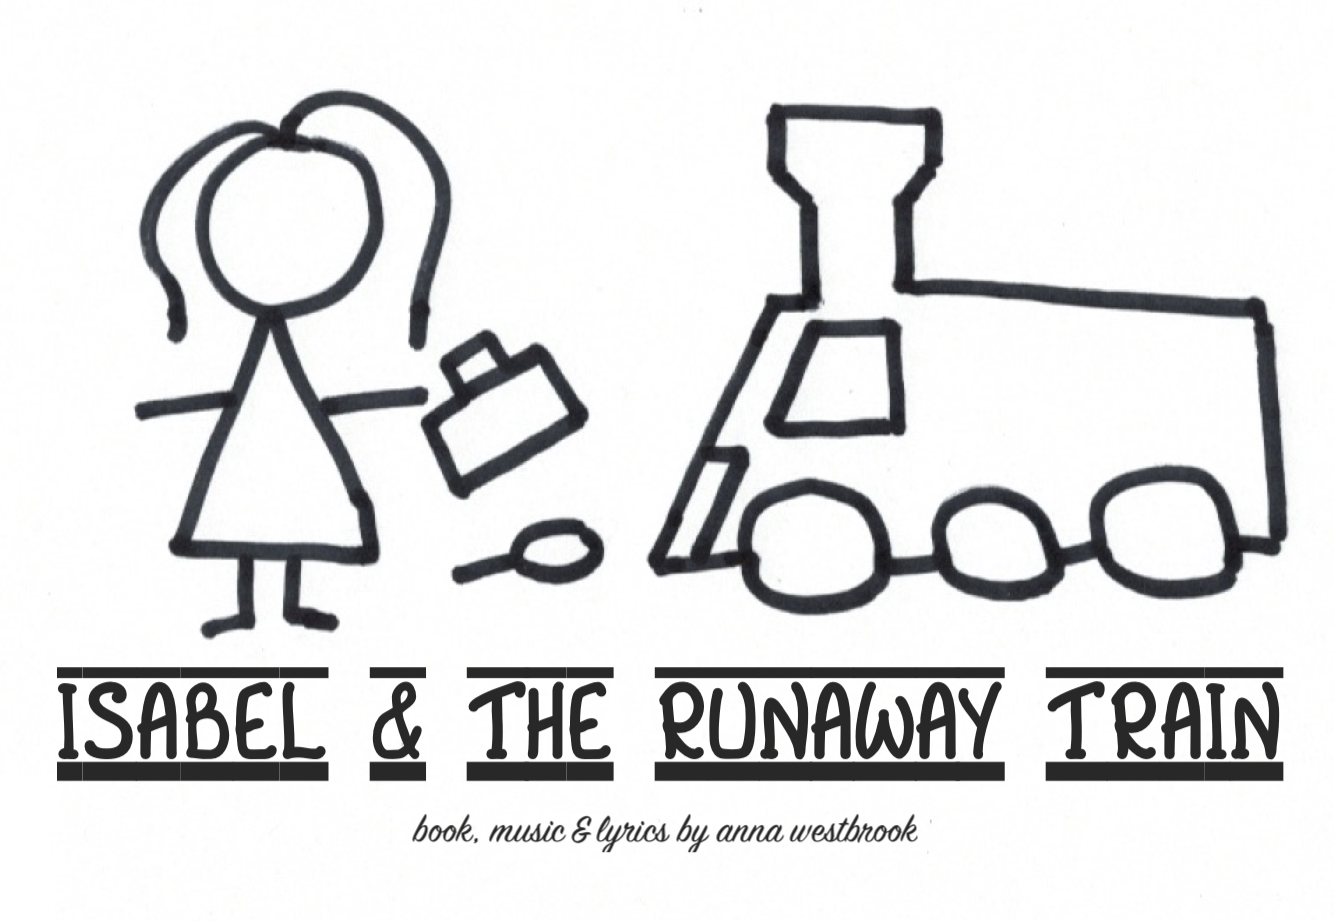 Interested in becoming a partner?THIS IS YOUR GUIDE  - to Isabel & the Runaway Train